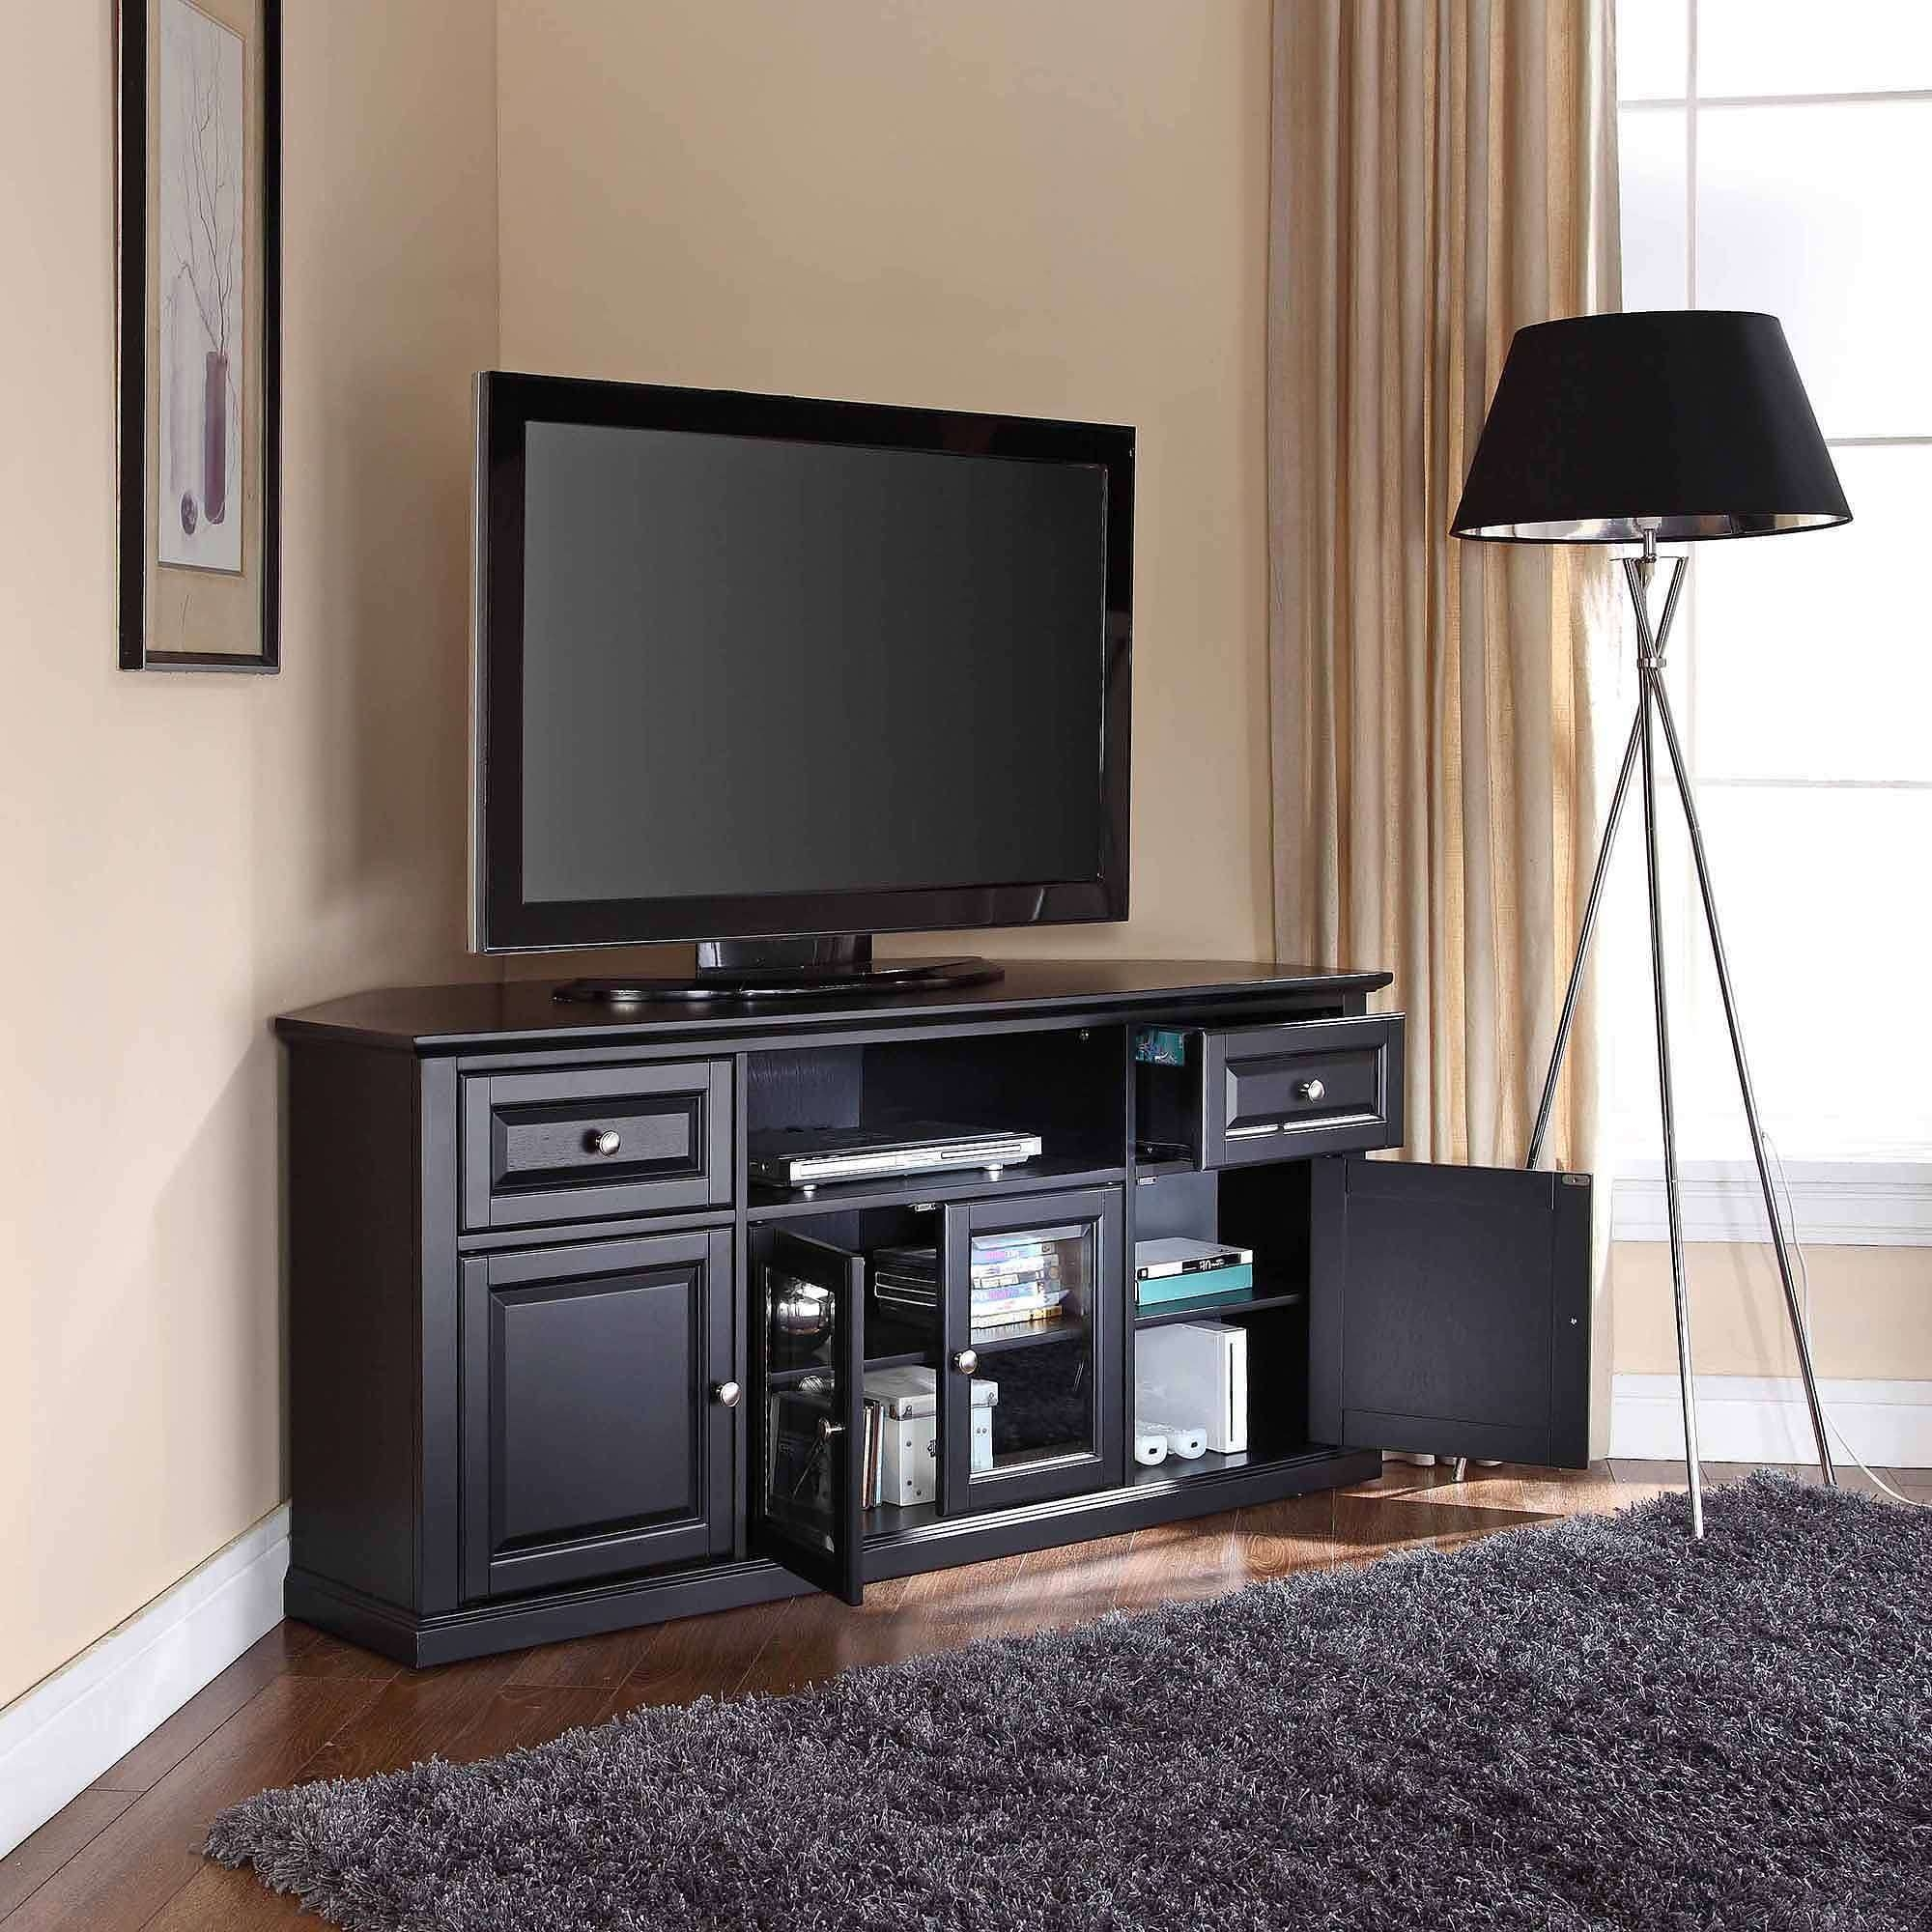 "Crosley Furniture Corner Tv Stand For Tvs Up To 60"" – Walmart With Regard To Black Corner Tv Cabinets With Glass Doors (View 6 of 20)"